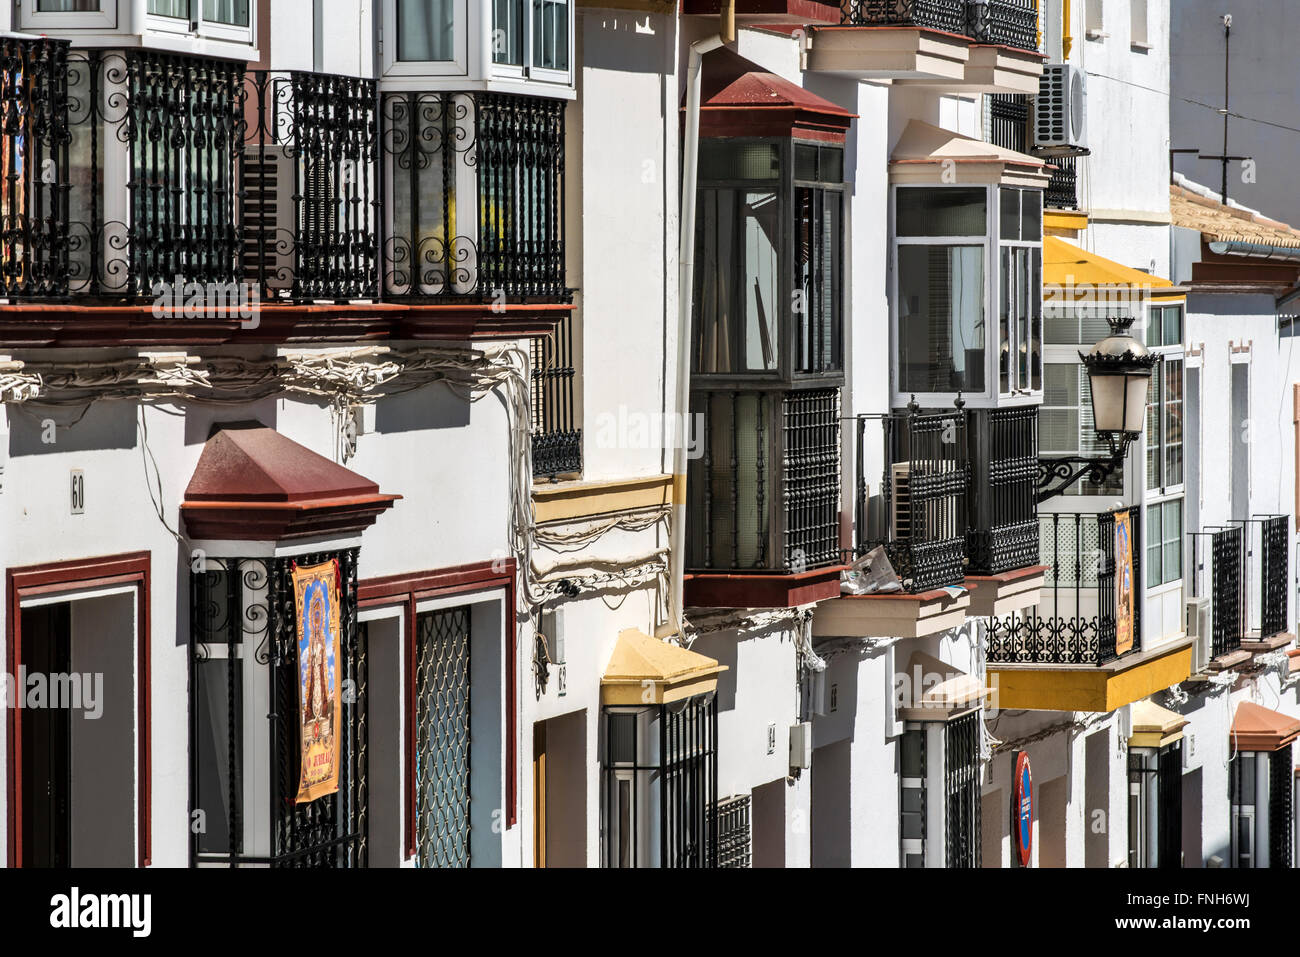 Building with bow windows in Olvera, Andalusia, Spain - Stock Image